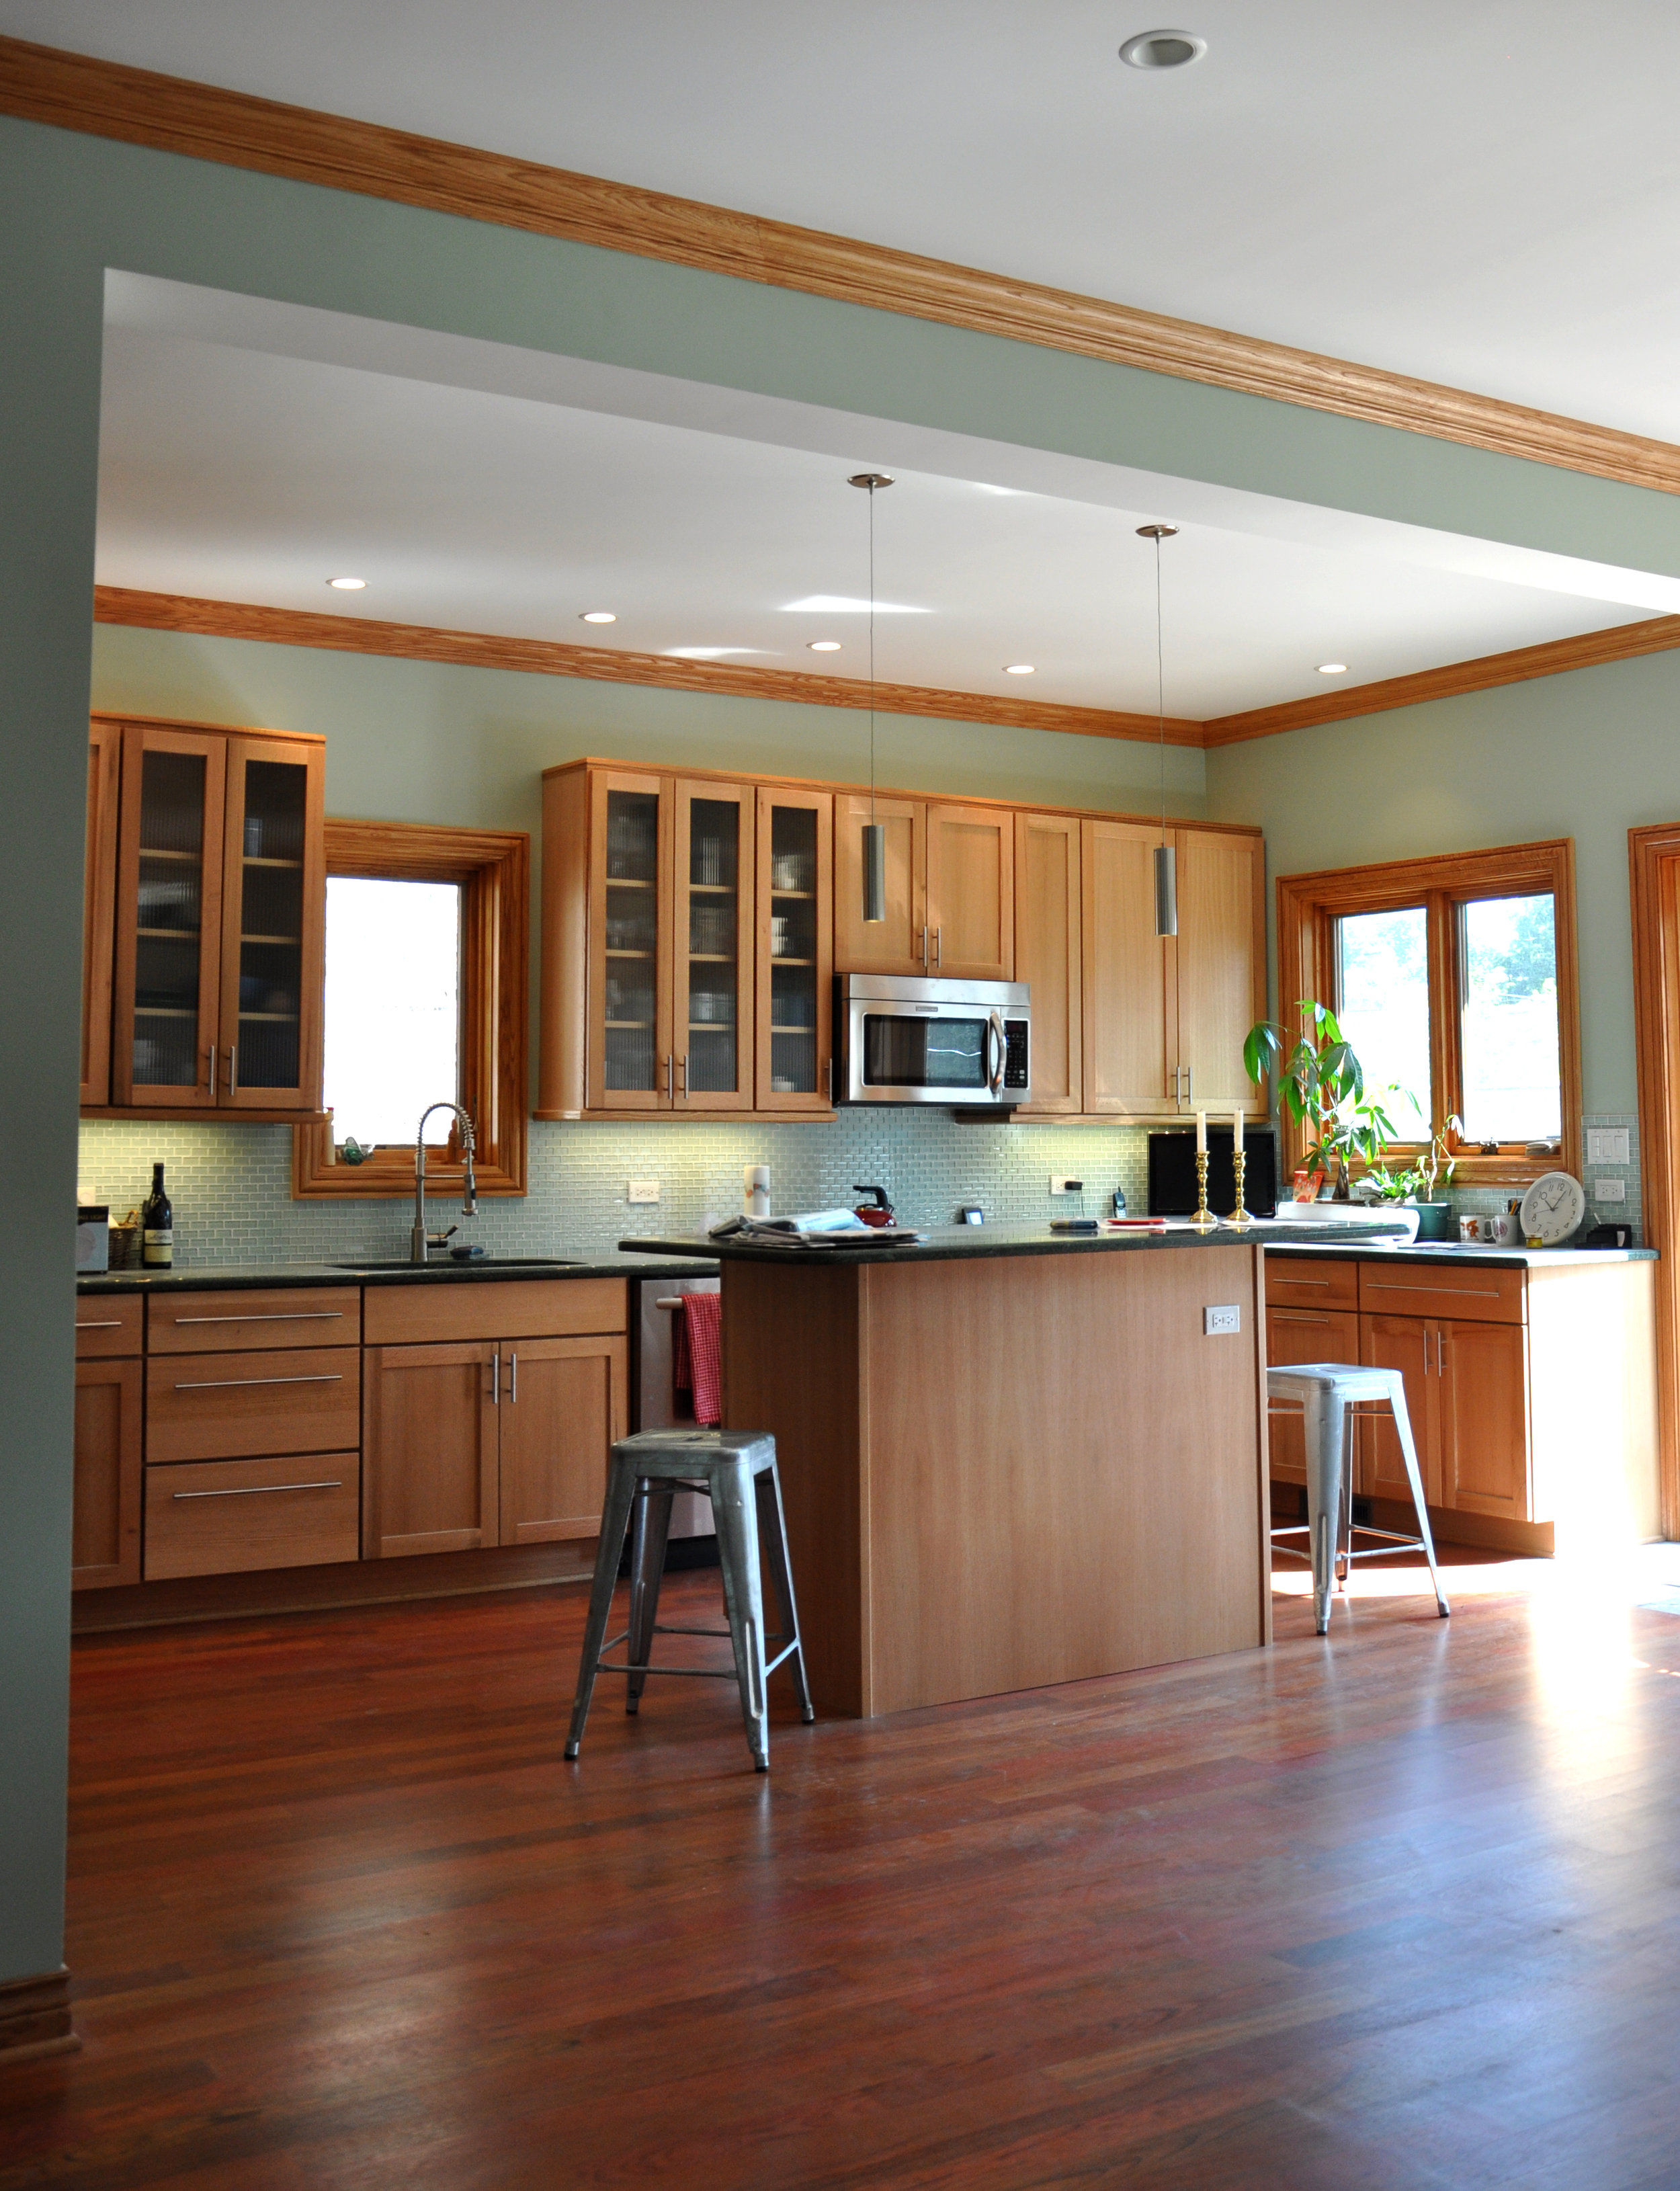 single-family residential addition and renovation, compact design, kitchen, open plan